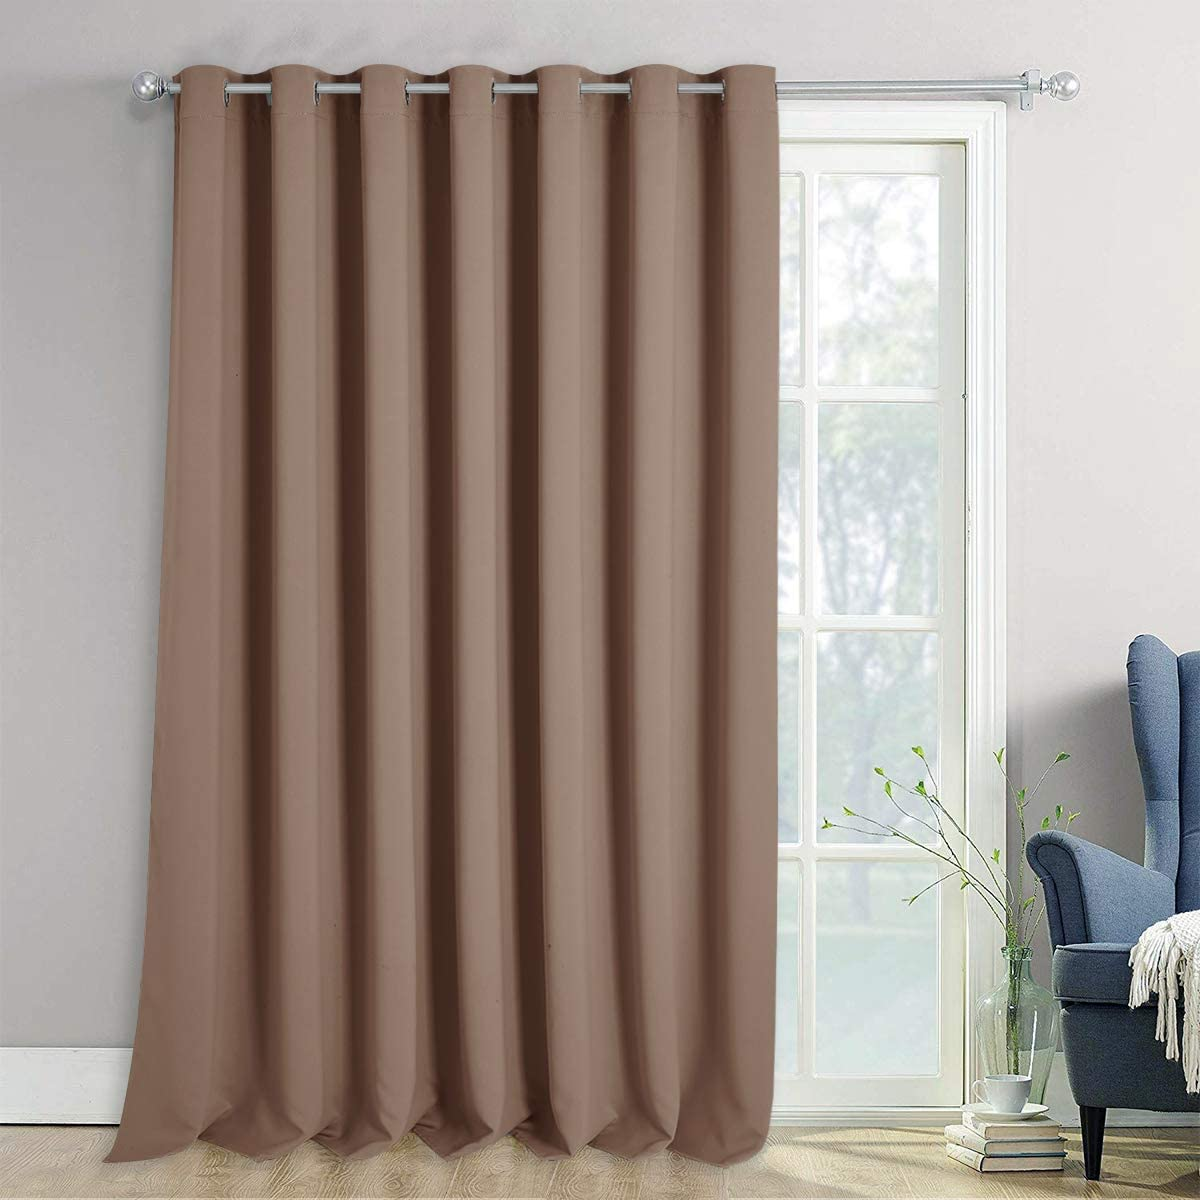 NICETOWN Patio Blackout Curtain Panels - Extra Wide Curtains, Sliding Door Insulated Drape, Privacy Room Divider Curtain for Hall Room (Tan=Cappuccino, 100 x 108 Inch)